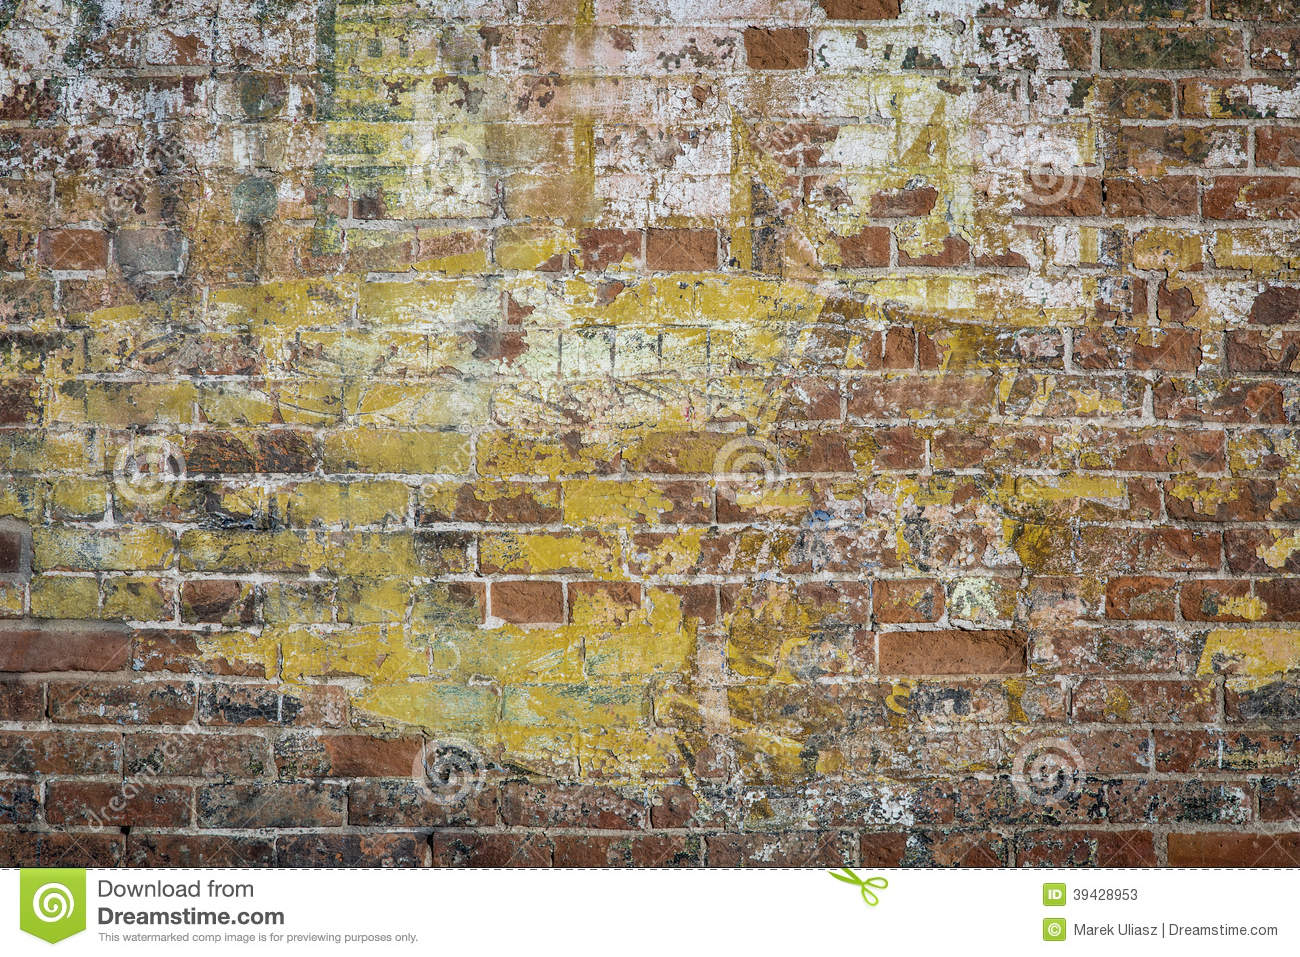 Graffiti brick wall stock image Image of grunge painted  39428953